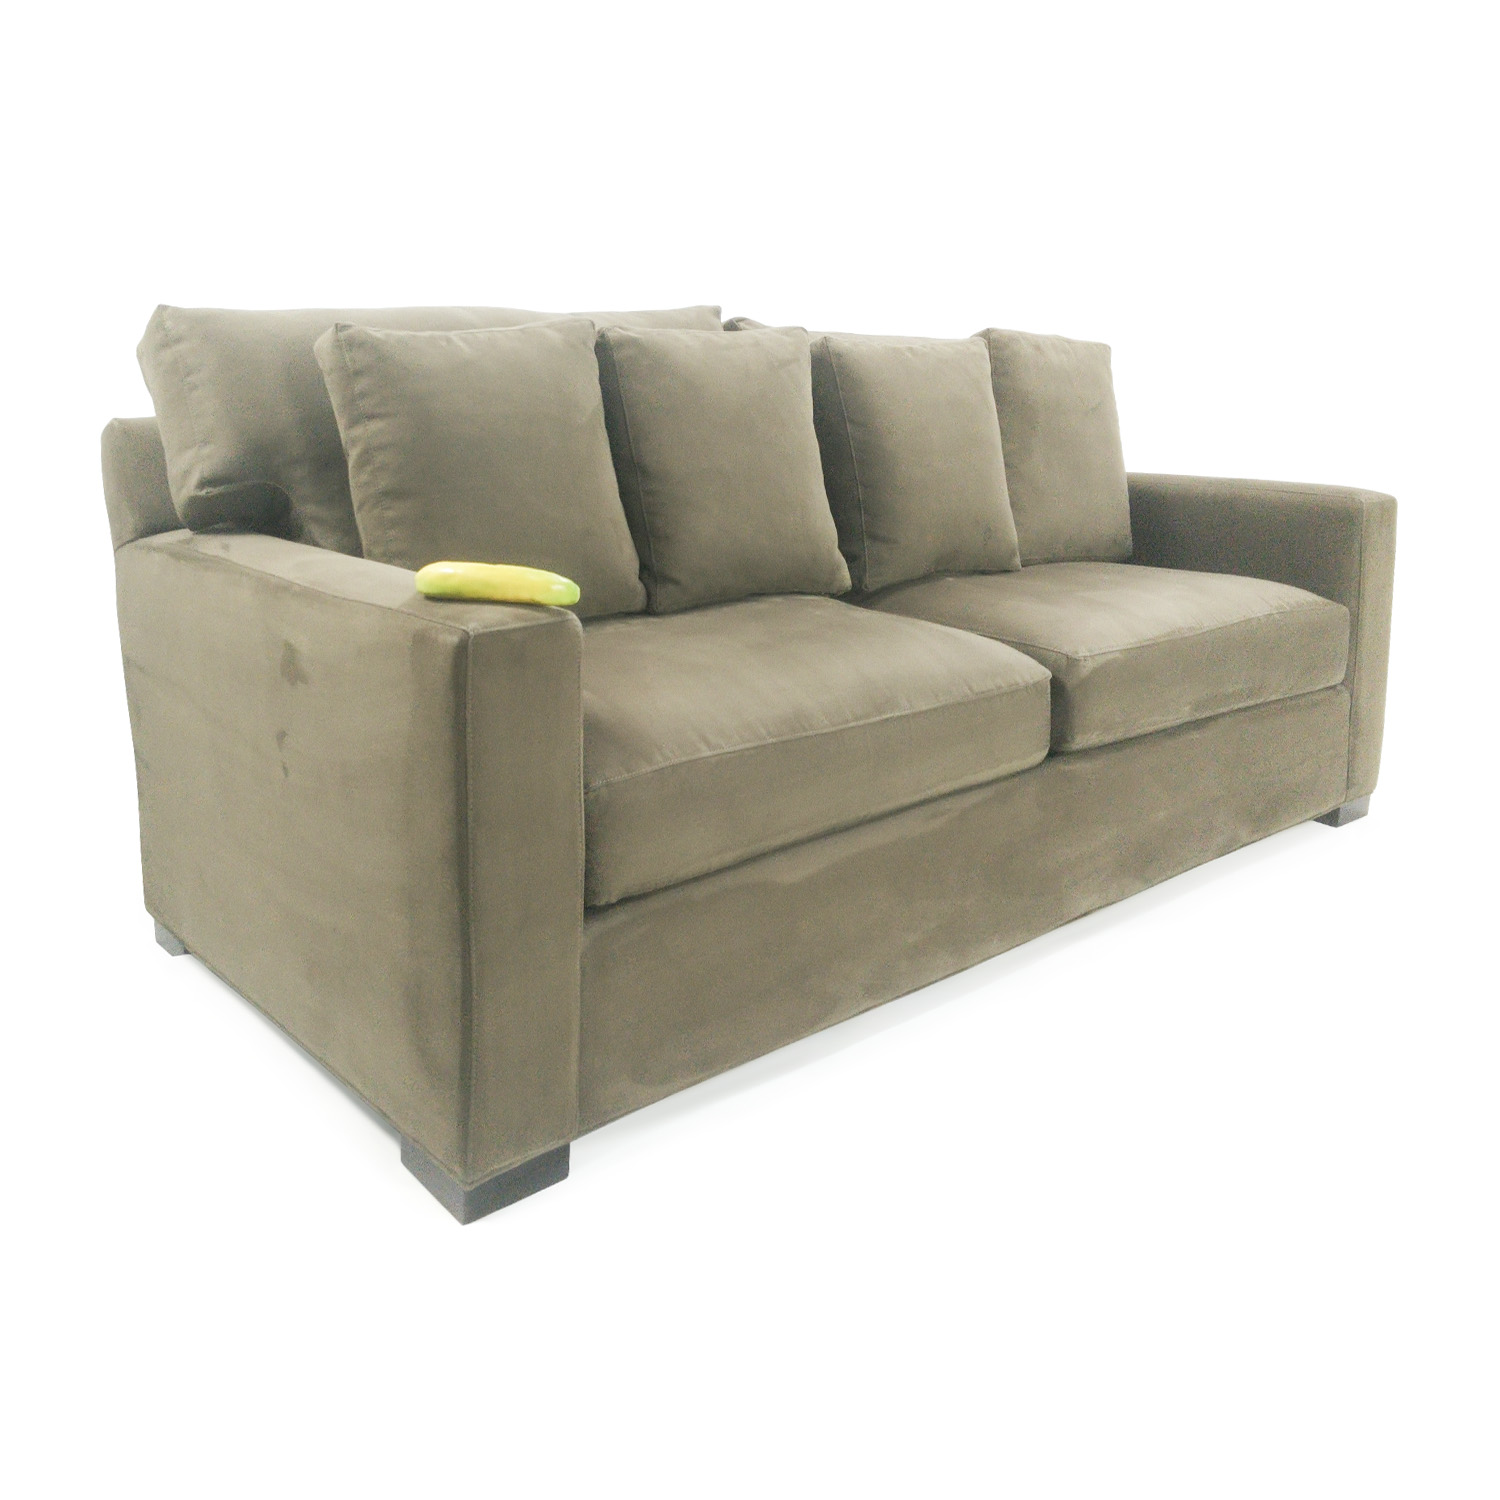 Axis sofa axis ii brown 3 seat sofa crate and barrel thesofa for Couch und sofa